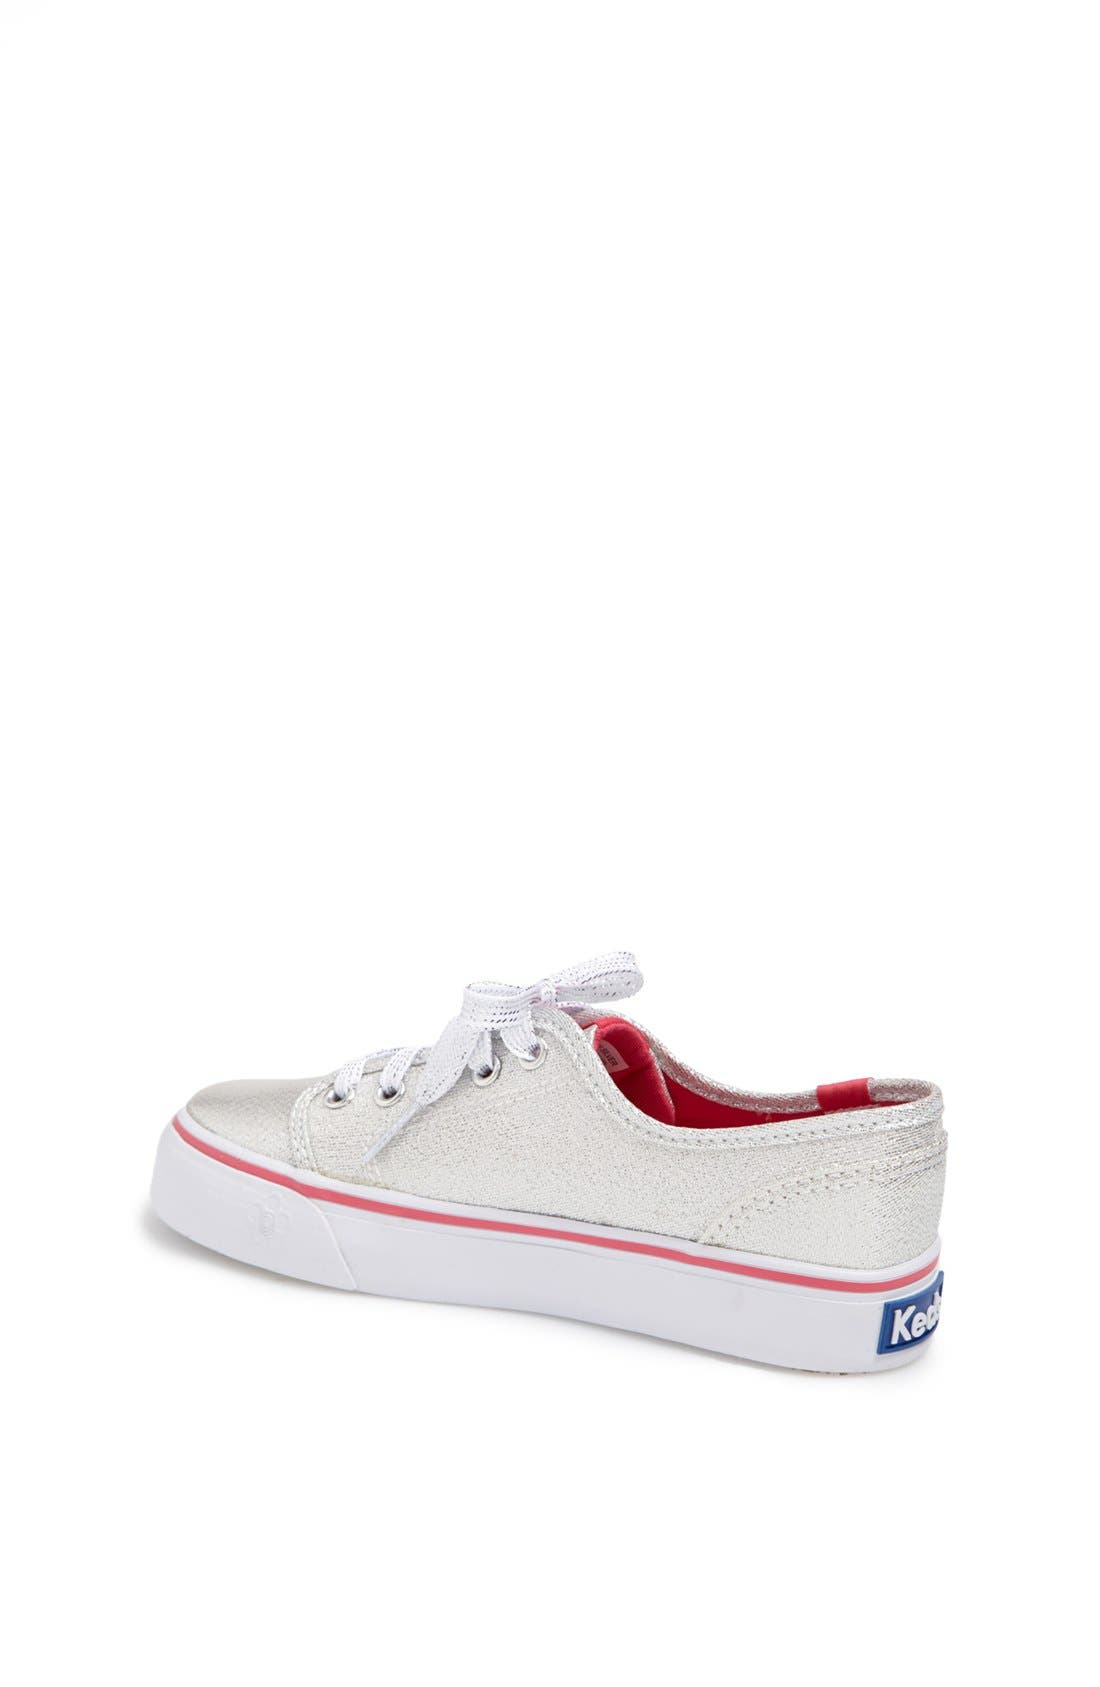 Alternate Image 2  - Keds® 'Double Dutch Shimmer' Sneaker (Toddler, Little Kid & Big Kid)